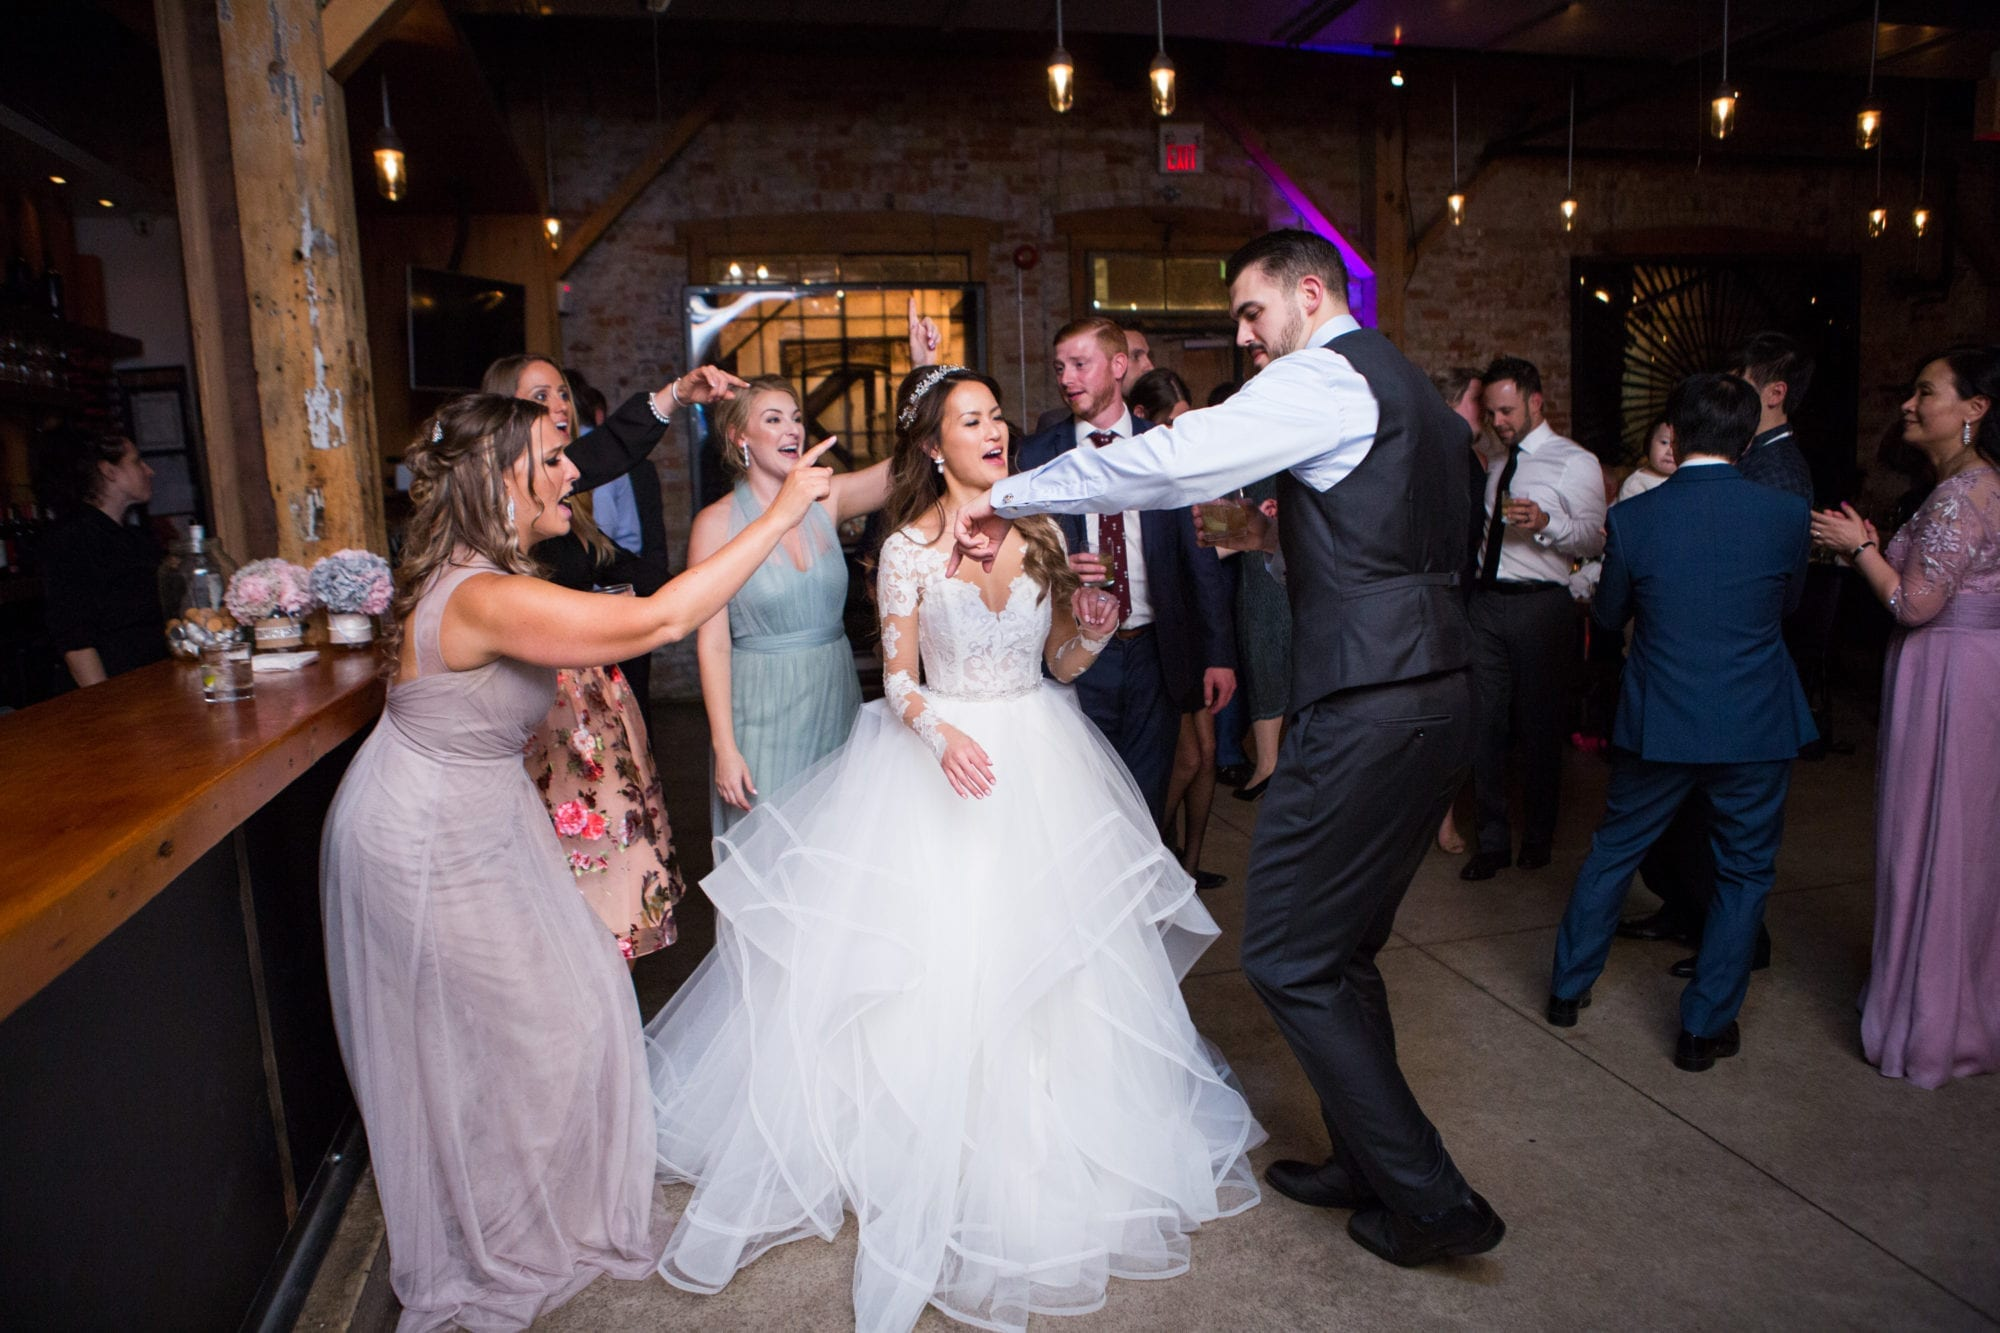 Wedding Party Dance Reception Dress Bride Groom Toronto Wedding Zsuzsi Pal Photography